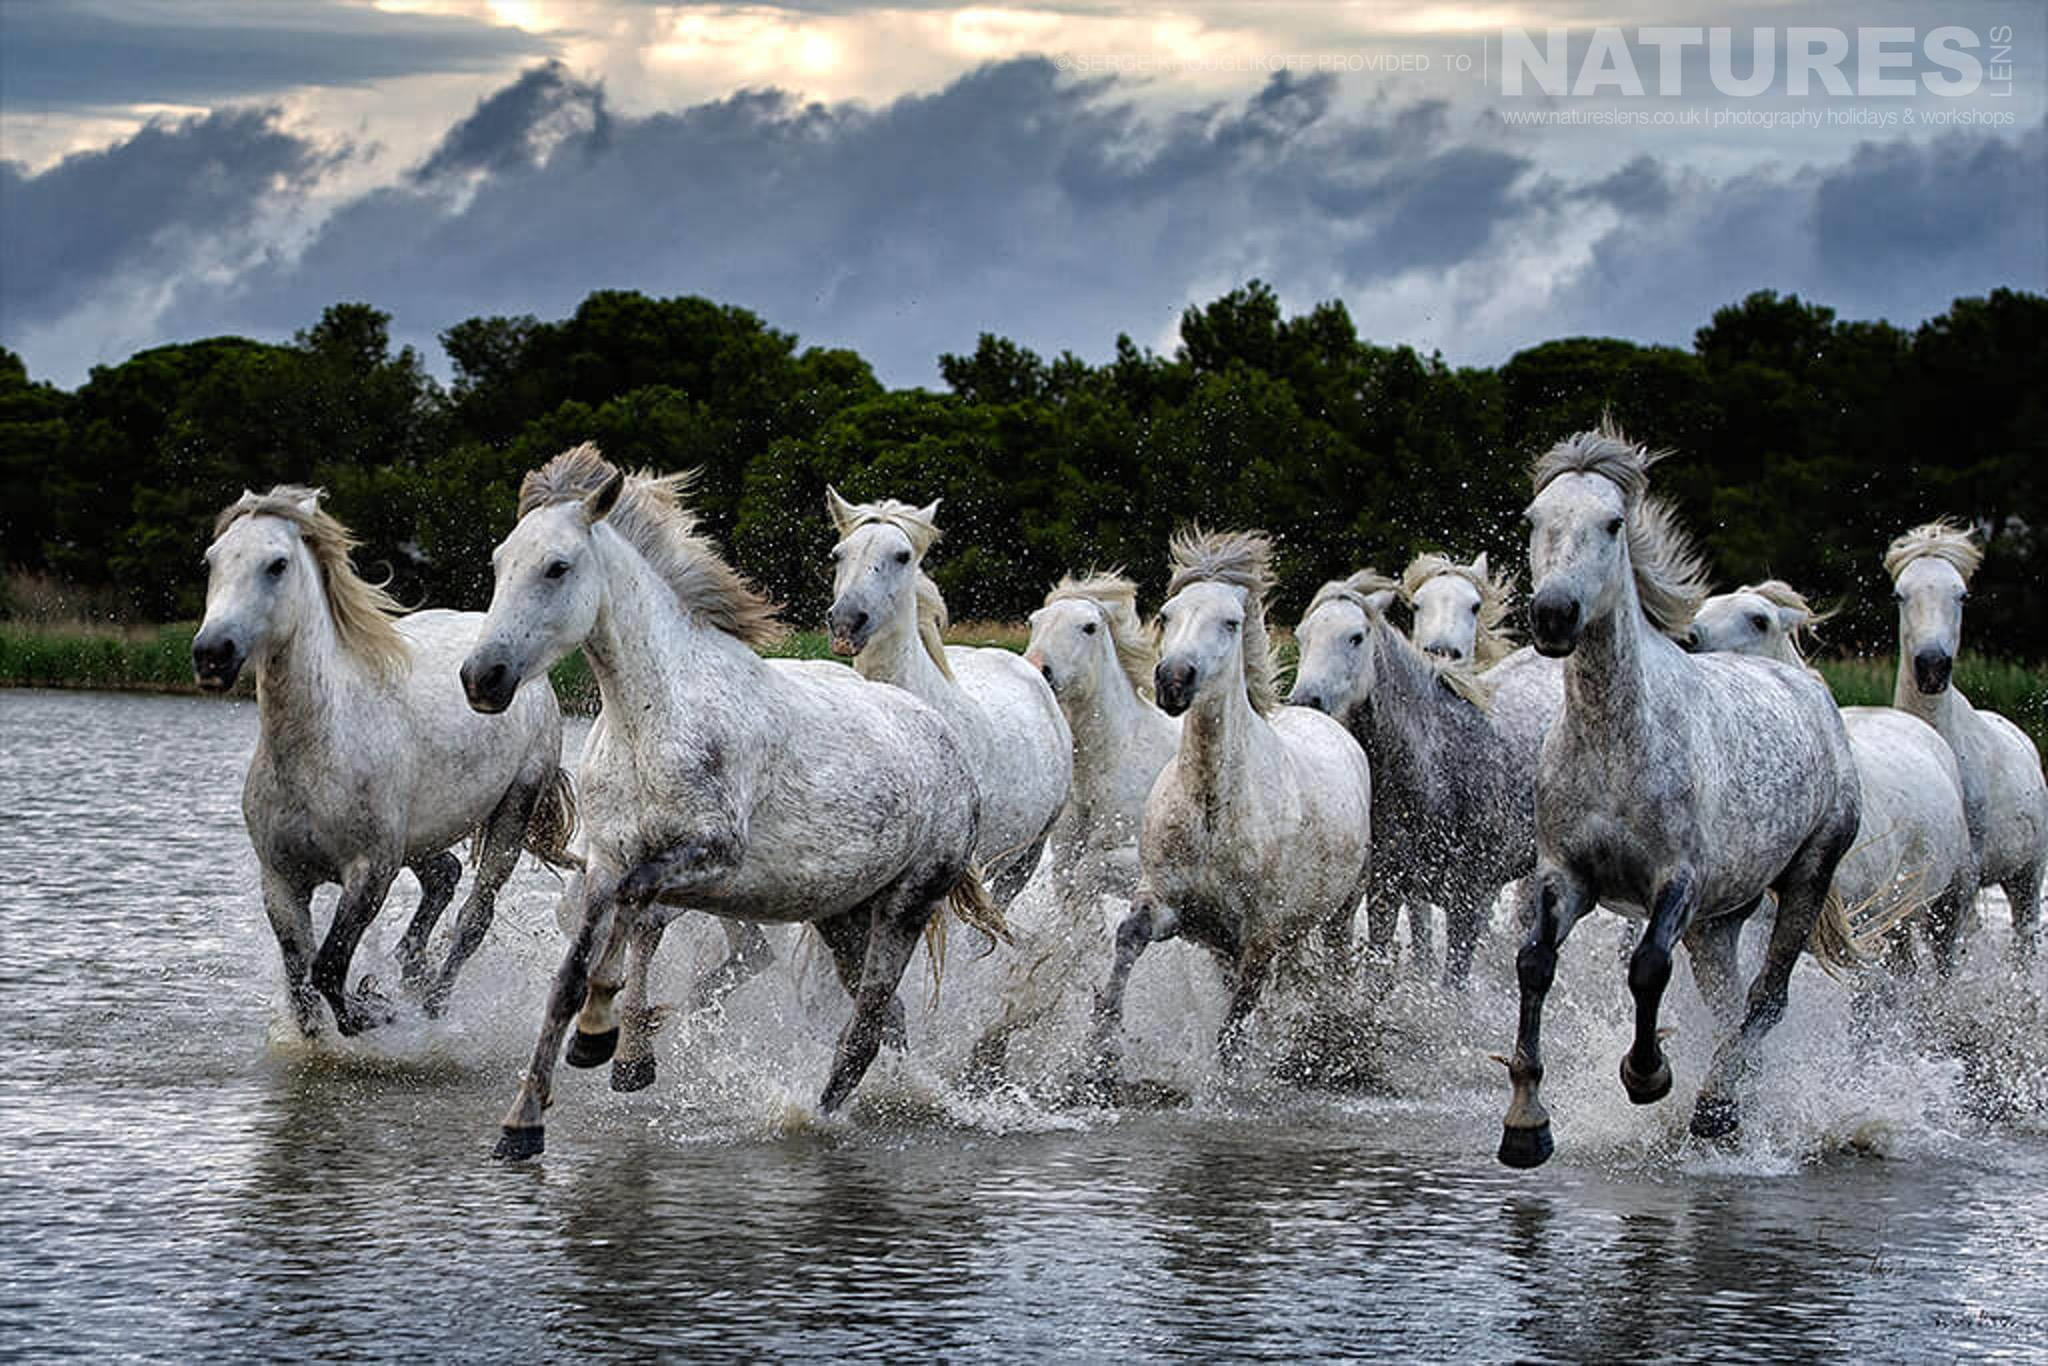 A herd of white horses running in shallow water as the light fades typical of the type of image that may be captured during the NaturesLens Wild White Horses of the Camargue Photography Holiday